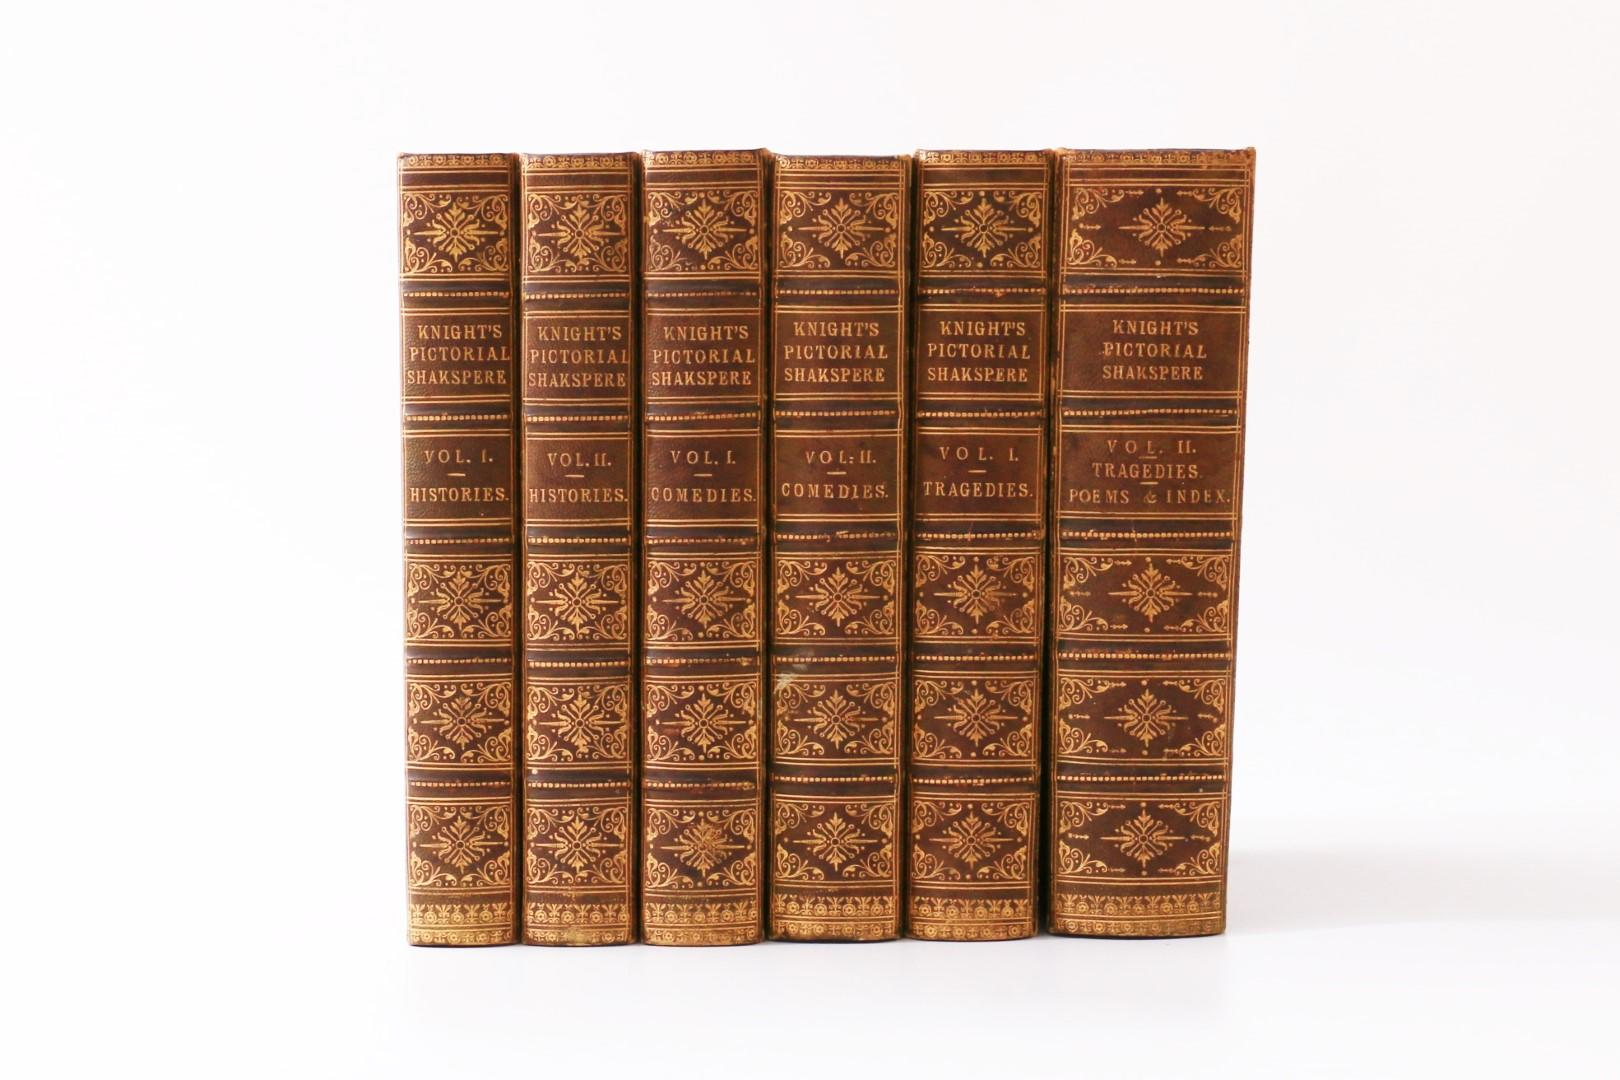 William Shakspere [Shakespeare ed. Charles Knight] - The National Edition: The Comedies, Histories, Tragedies and Poems - Charles Knight, 1851, First Thus.